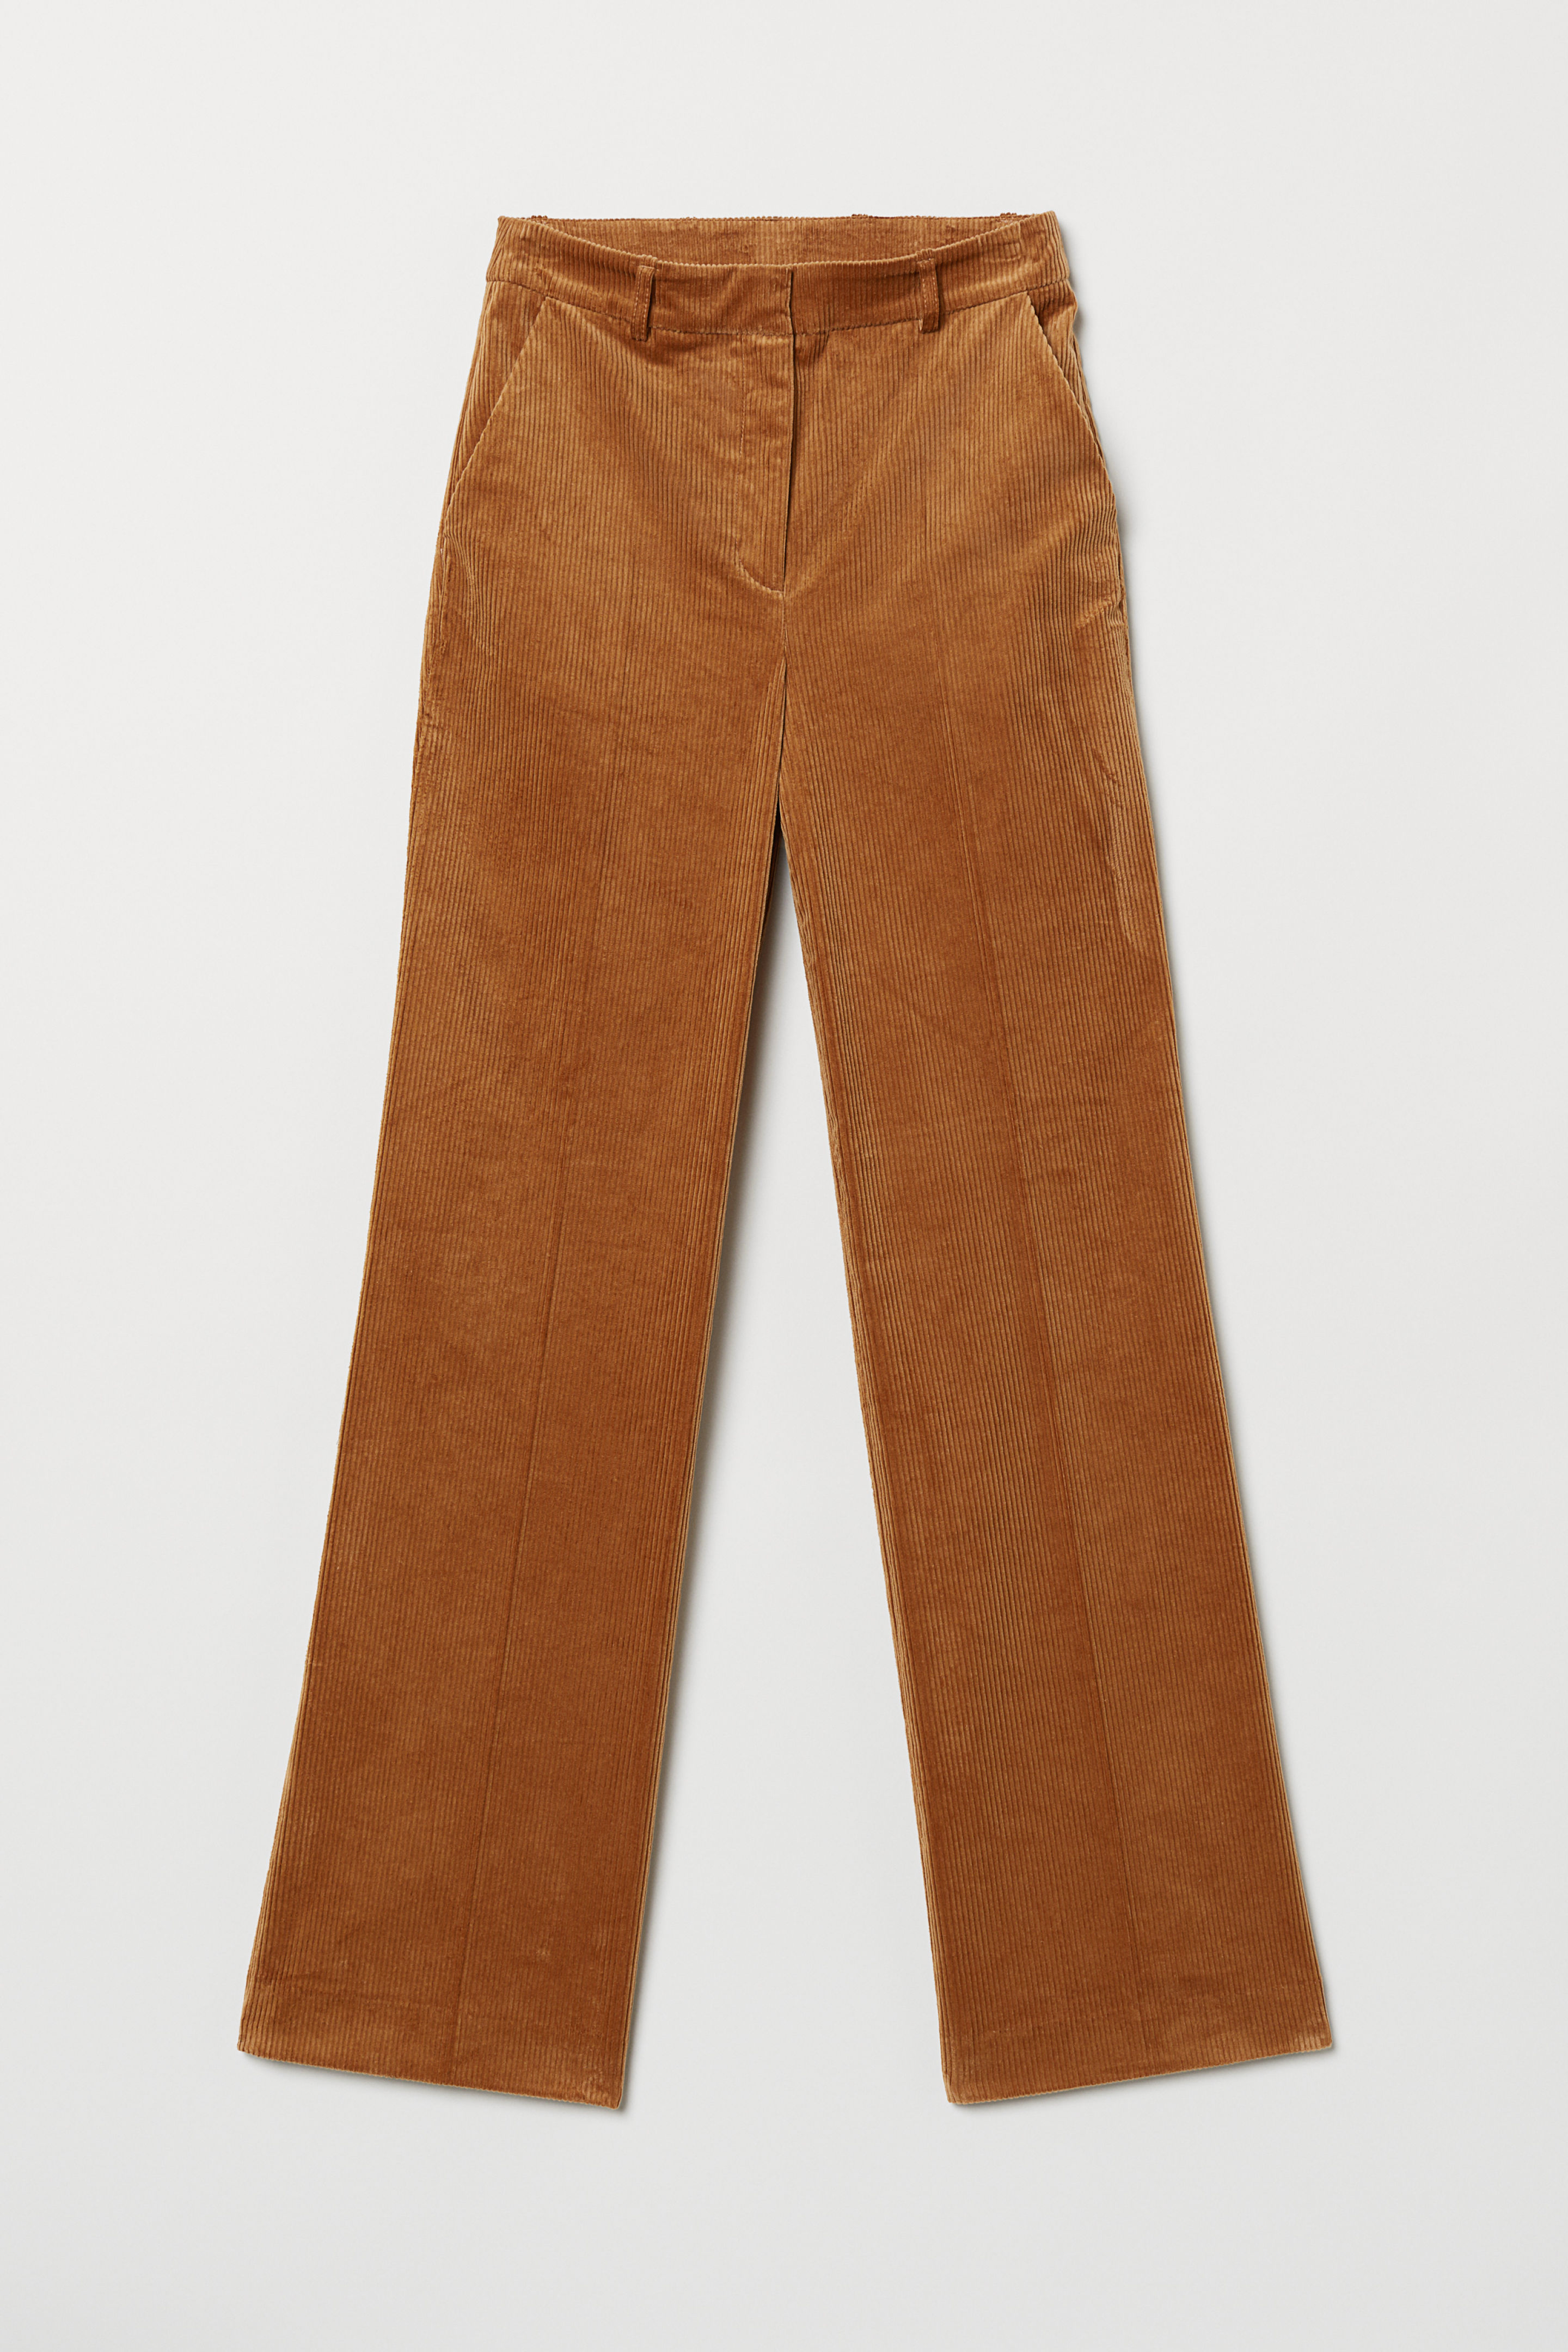 3aafb63a Best Corduroy Suits For Fall, 70s Retro Trends 2018